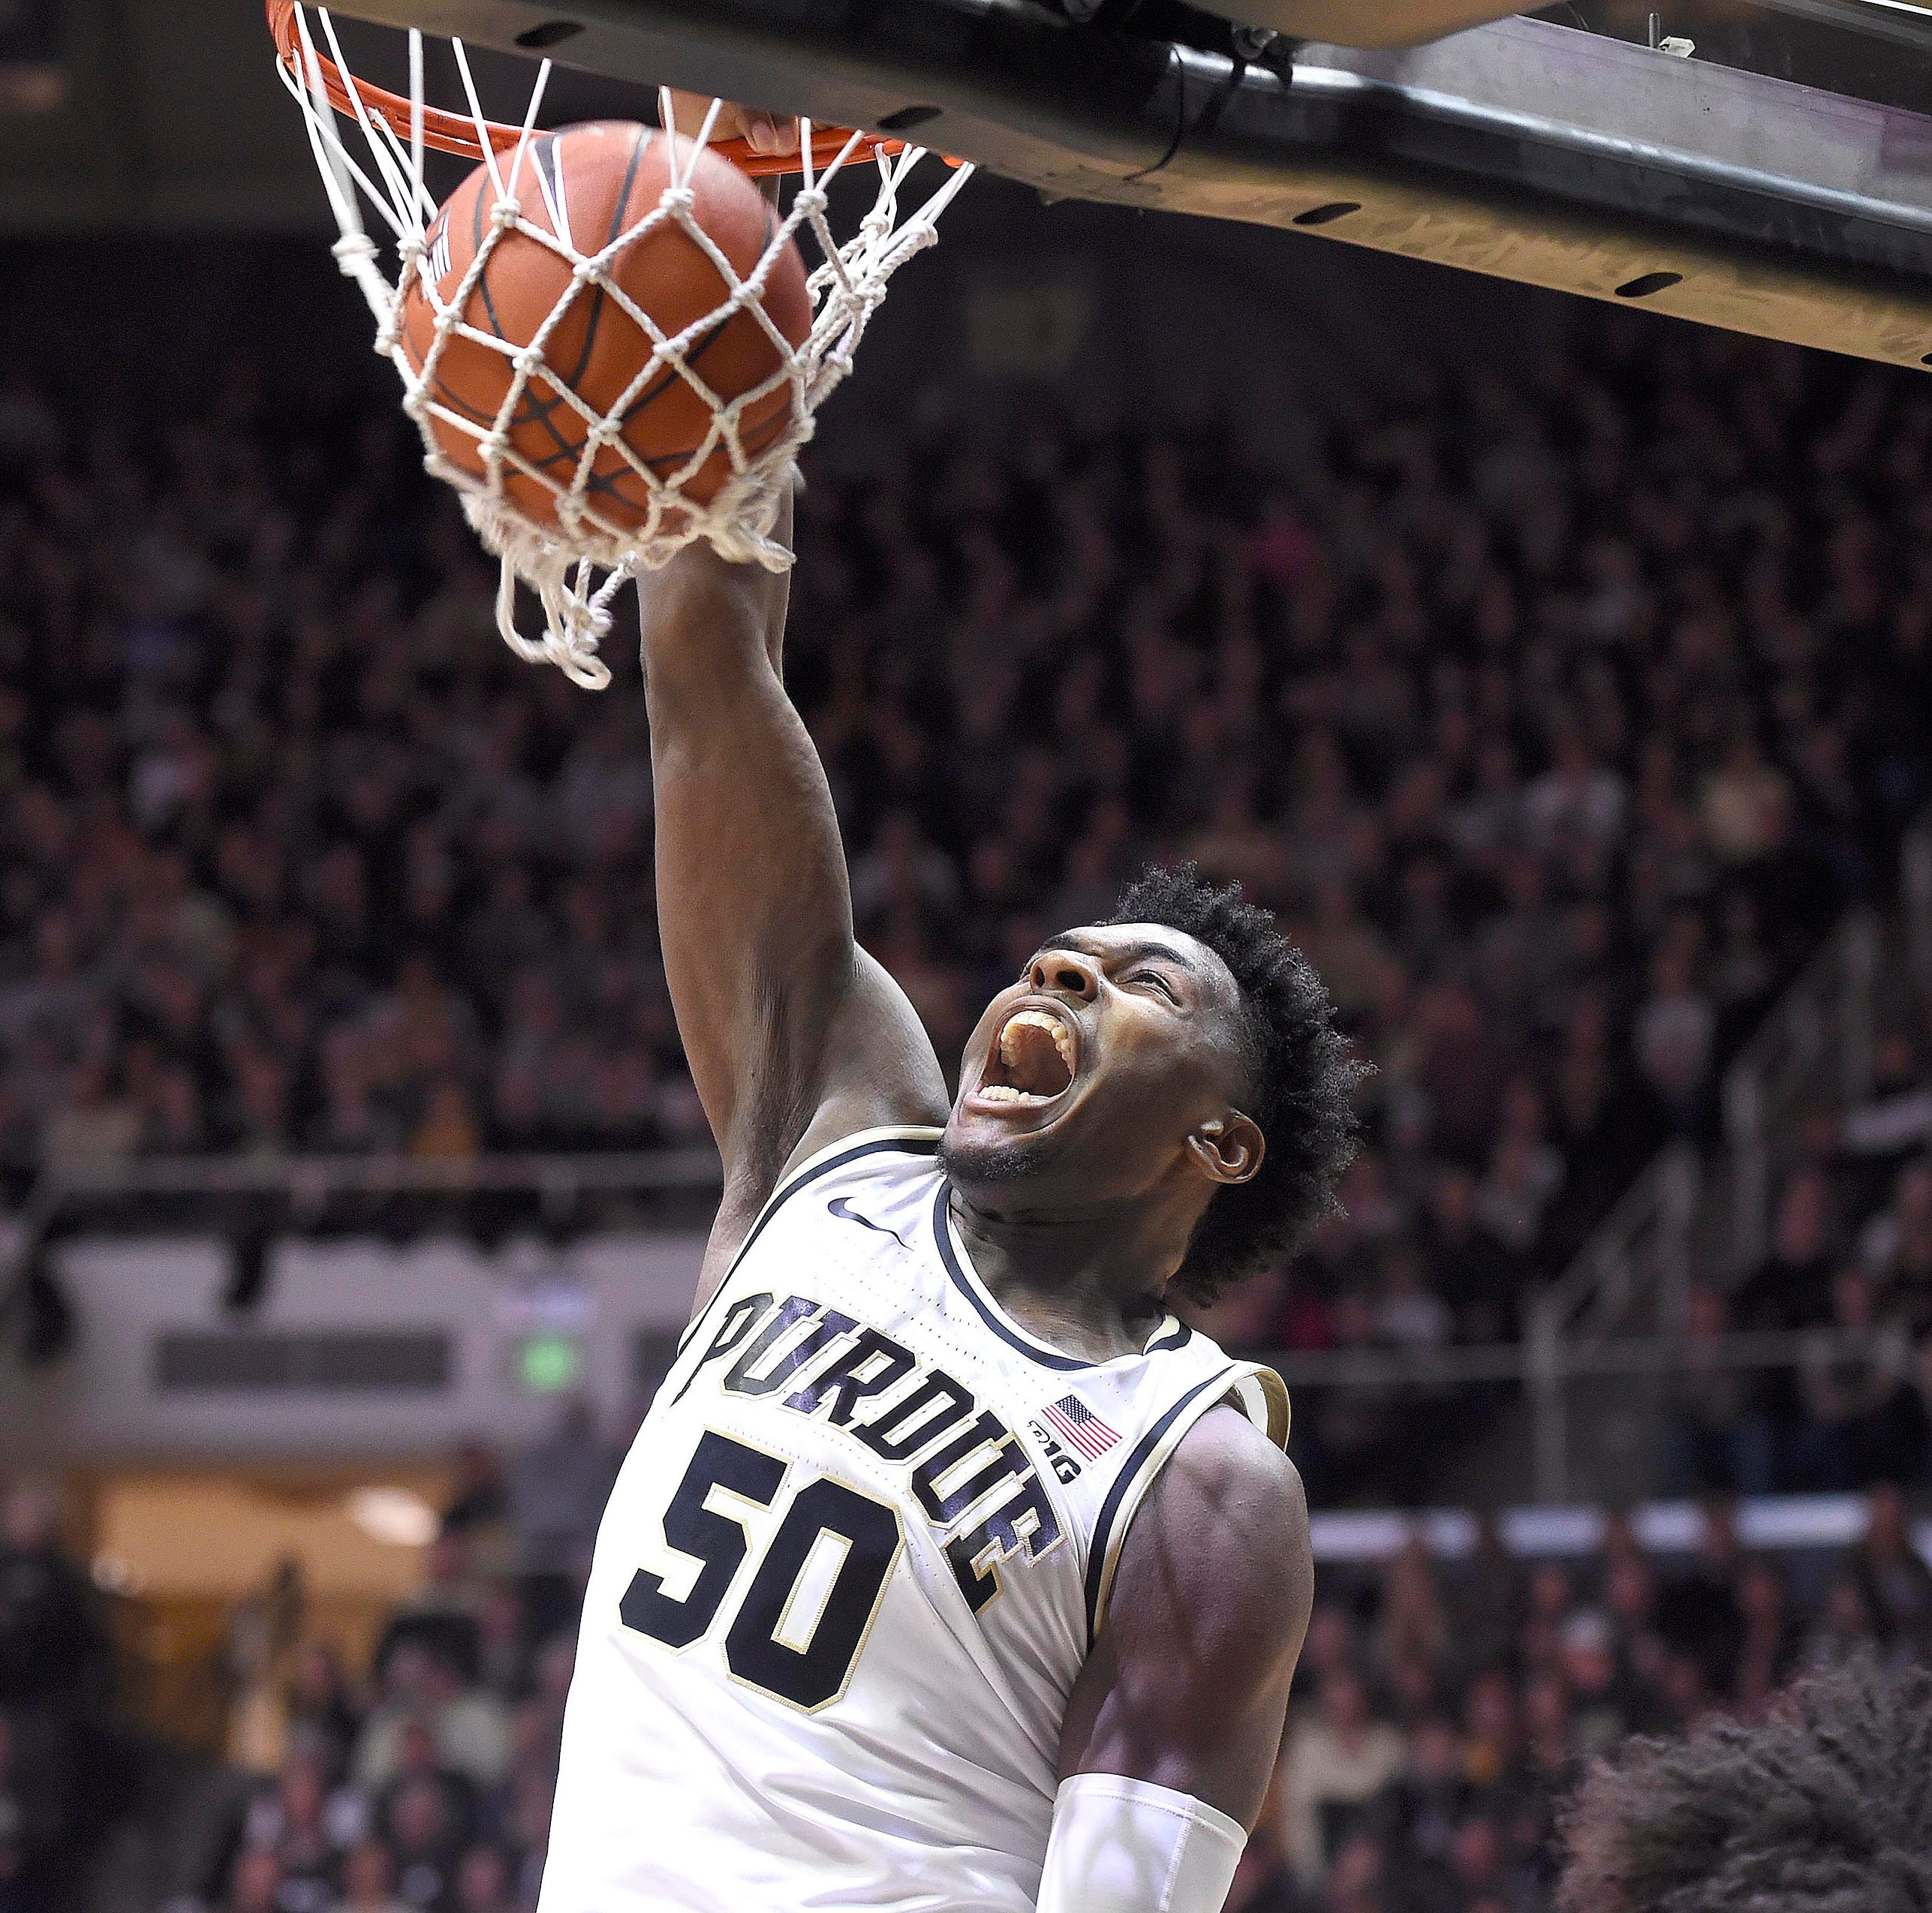 Purdue's Trevion Williams once left Chicago's gun violence. He returns as a rising star.